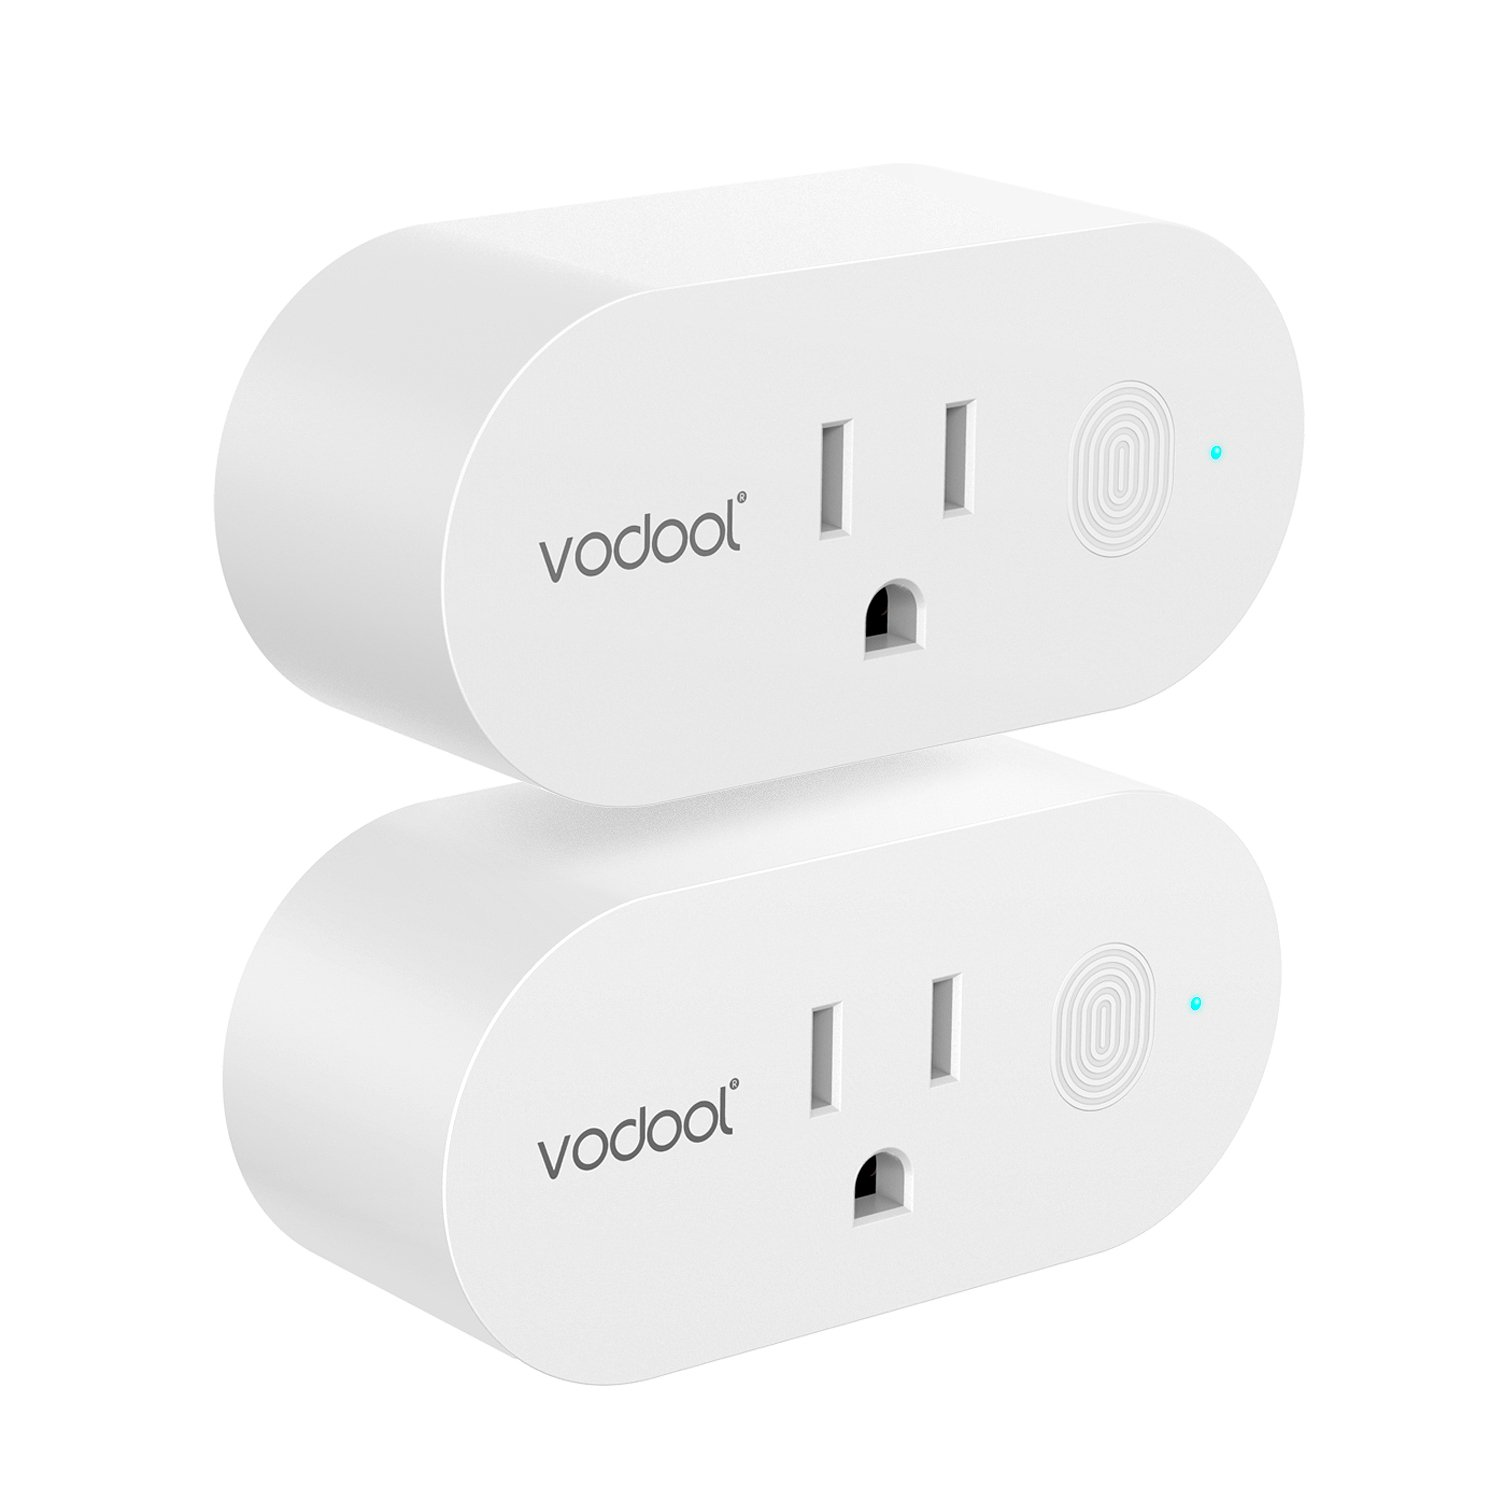 Smart Plug, VODOOL Mini Wi-Fi Outlet Compatible With Amazon Alexa and Google Assistant with Remote Control, Energy Monitoring, Schedule and Timer Function, No Hub Required, 16A (2 Pack)